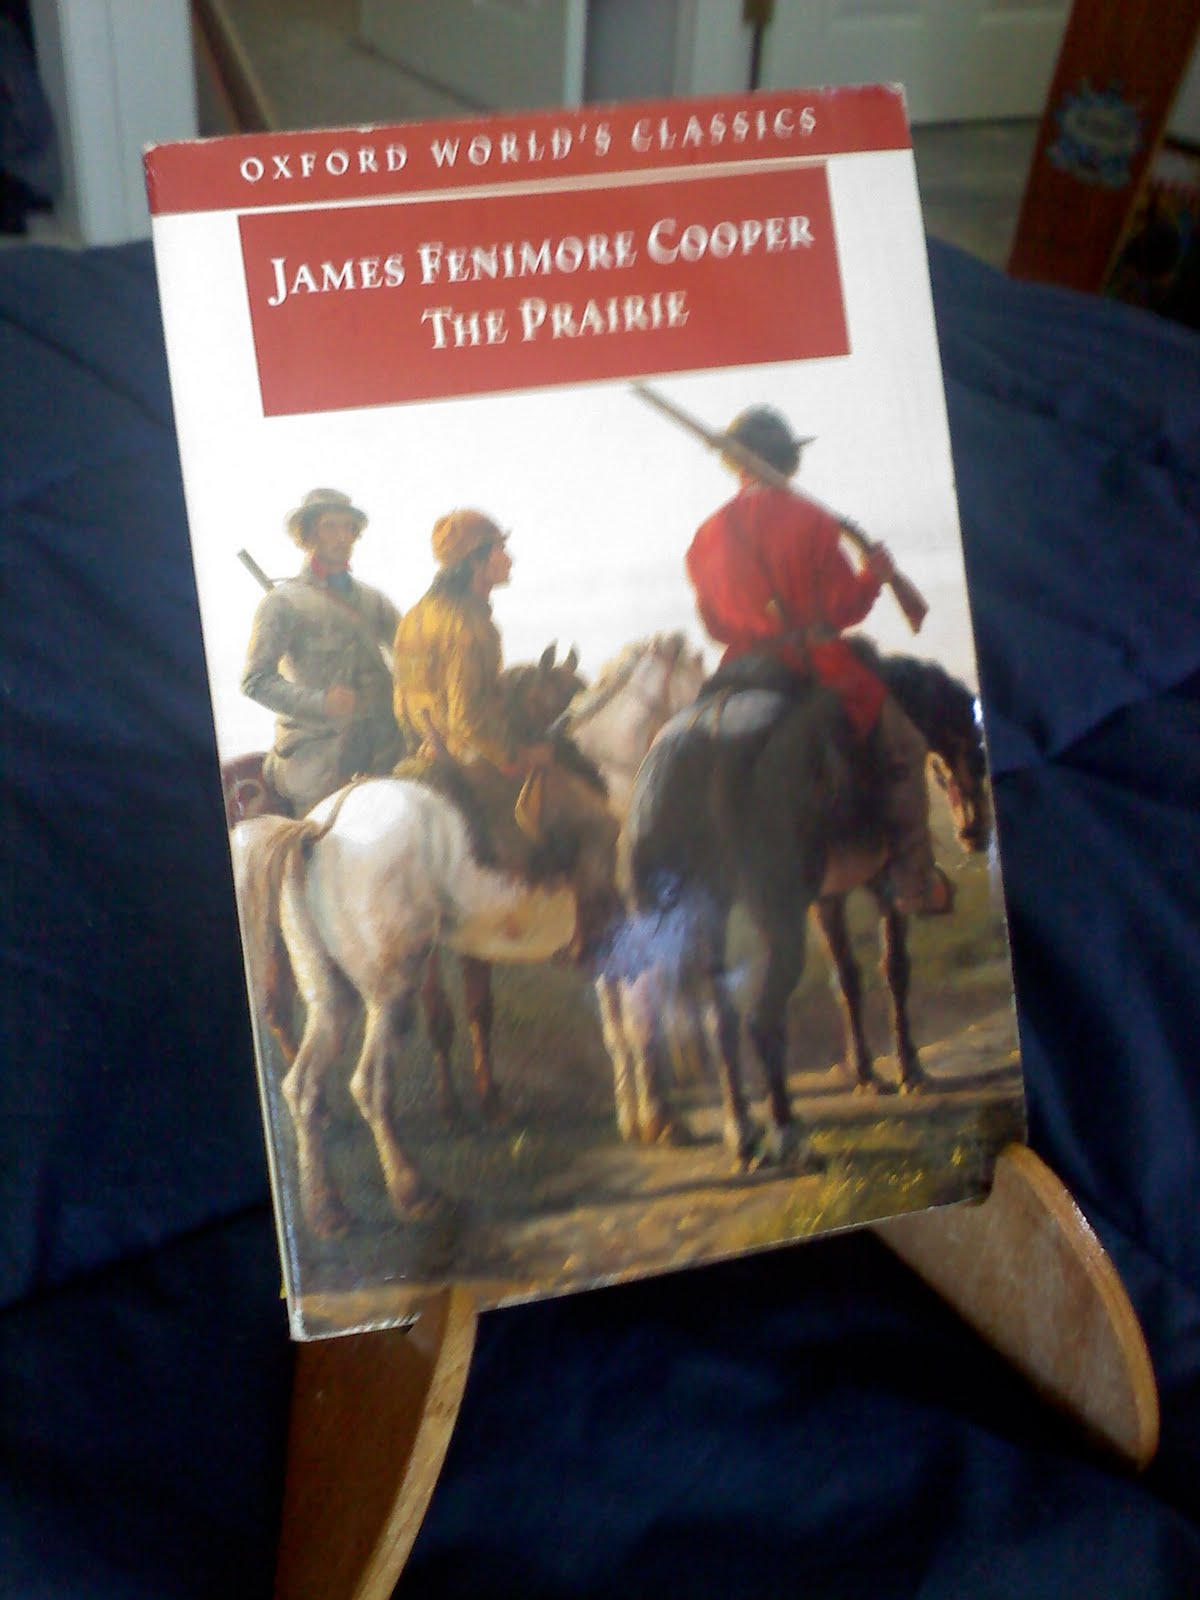 mark twain essay on james fenimore cooper James fenimore cooper wrote the leatherstocking tales true  the book that  first brought recognition to mark twain was ______ tom sawyer the pearl.